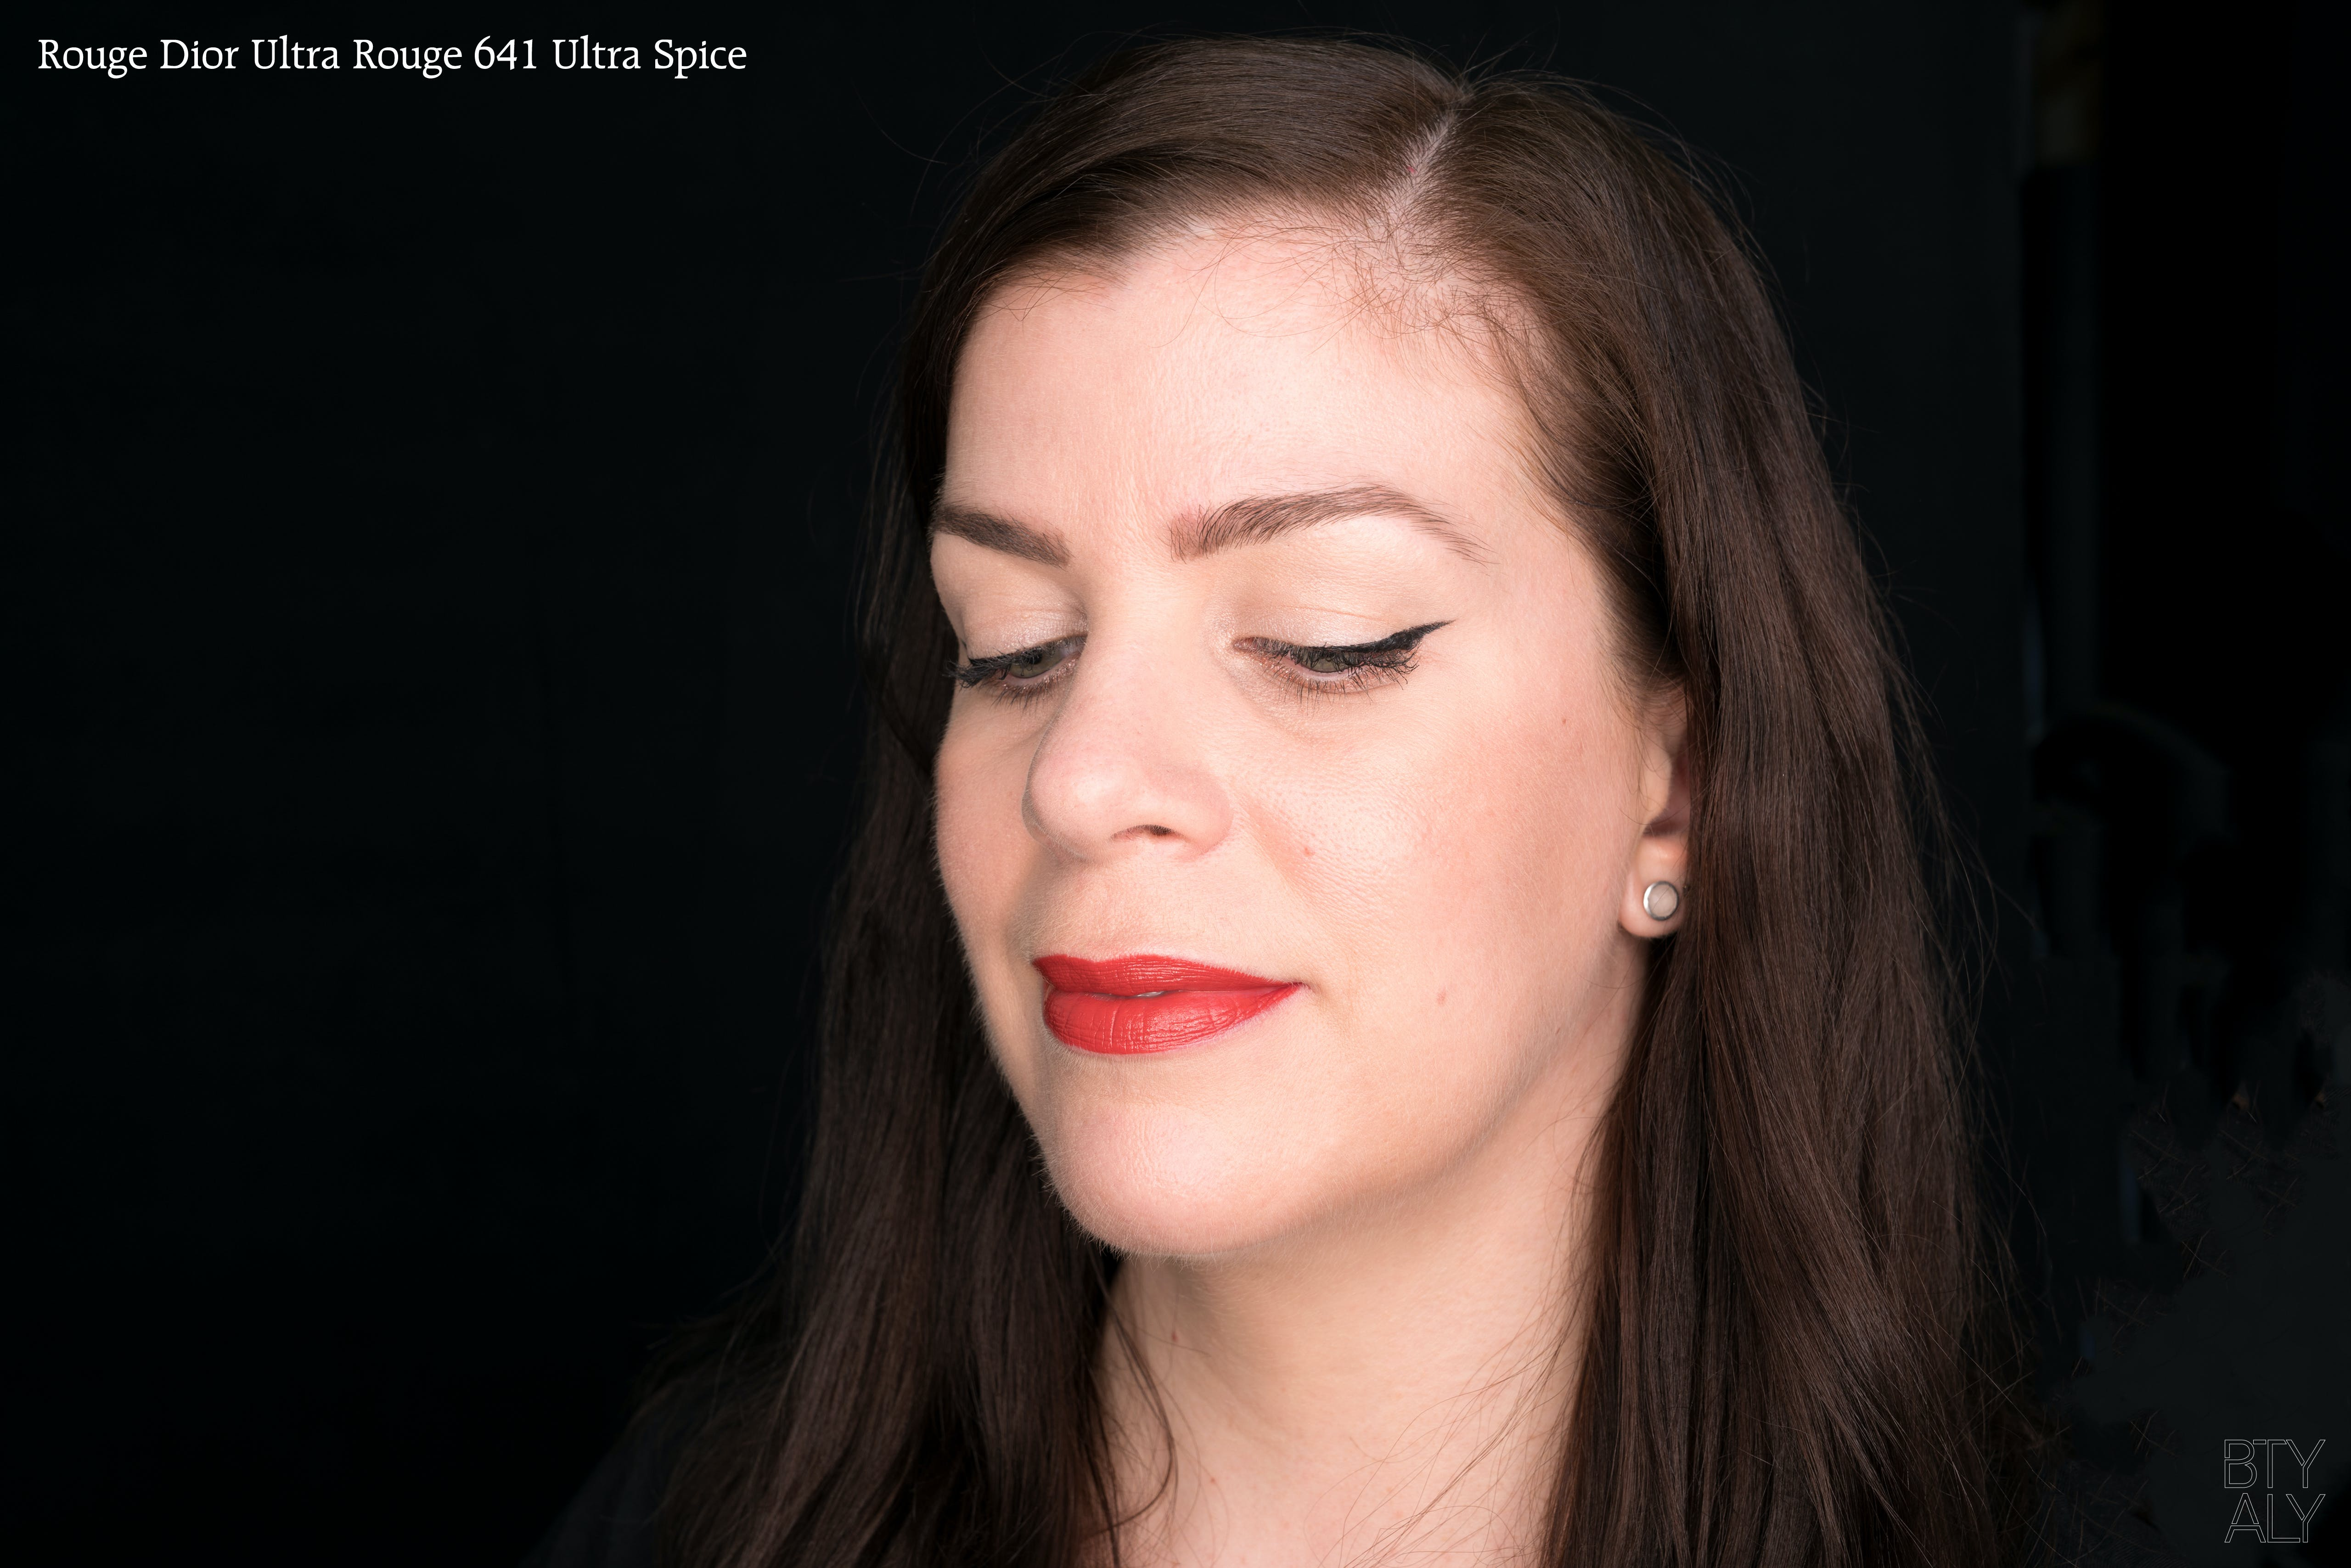 Rouge Dior Ultra Rouge Lipsticks 641 swatch